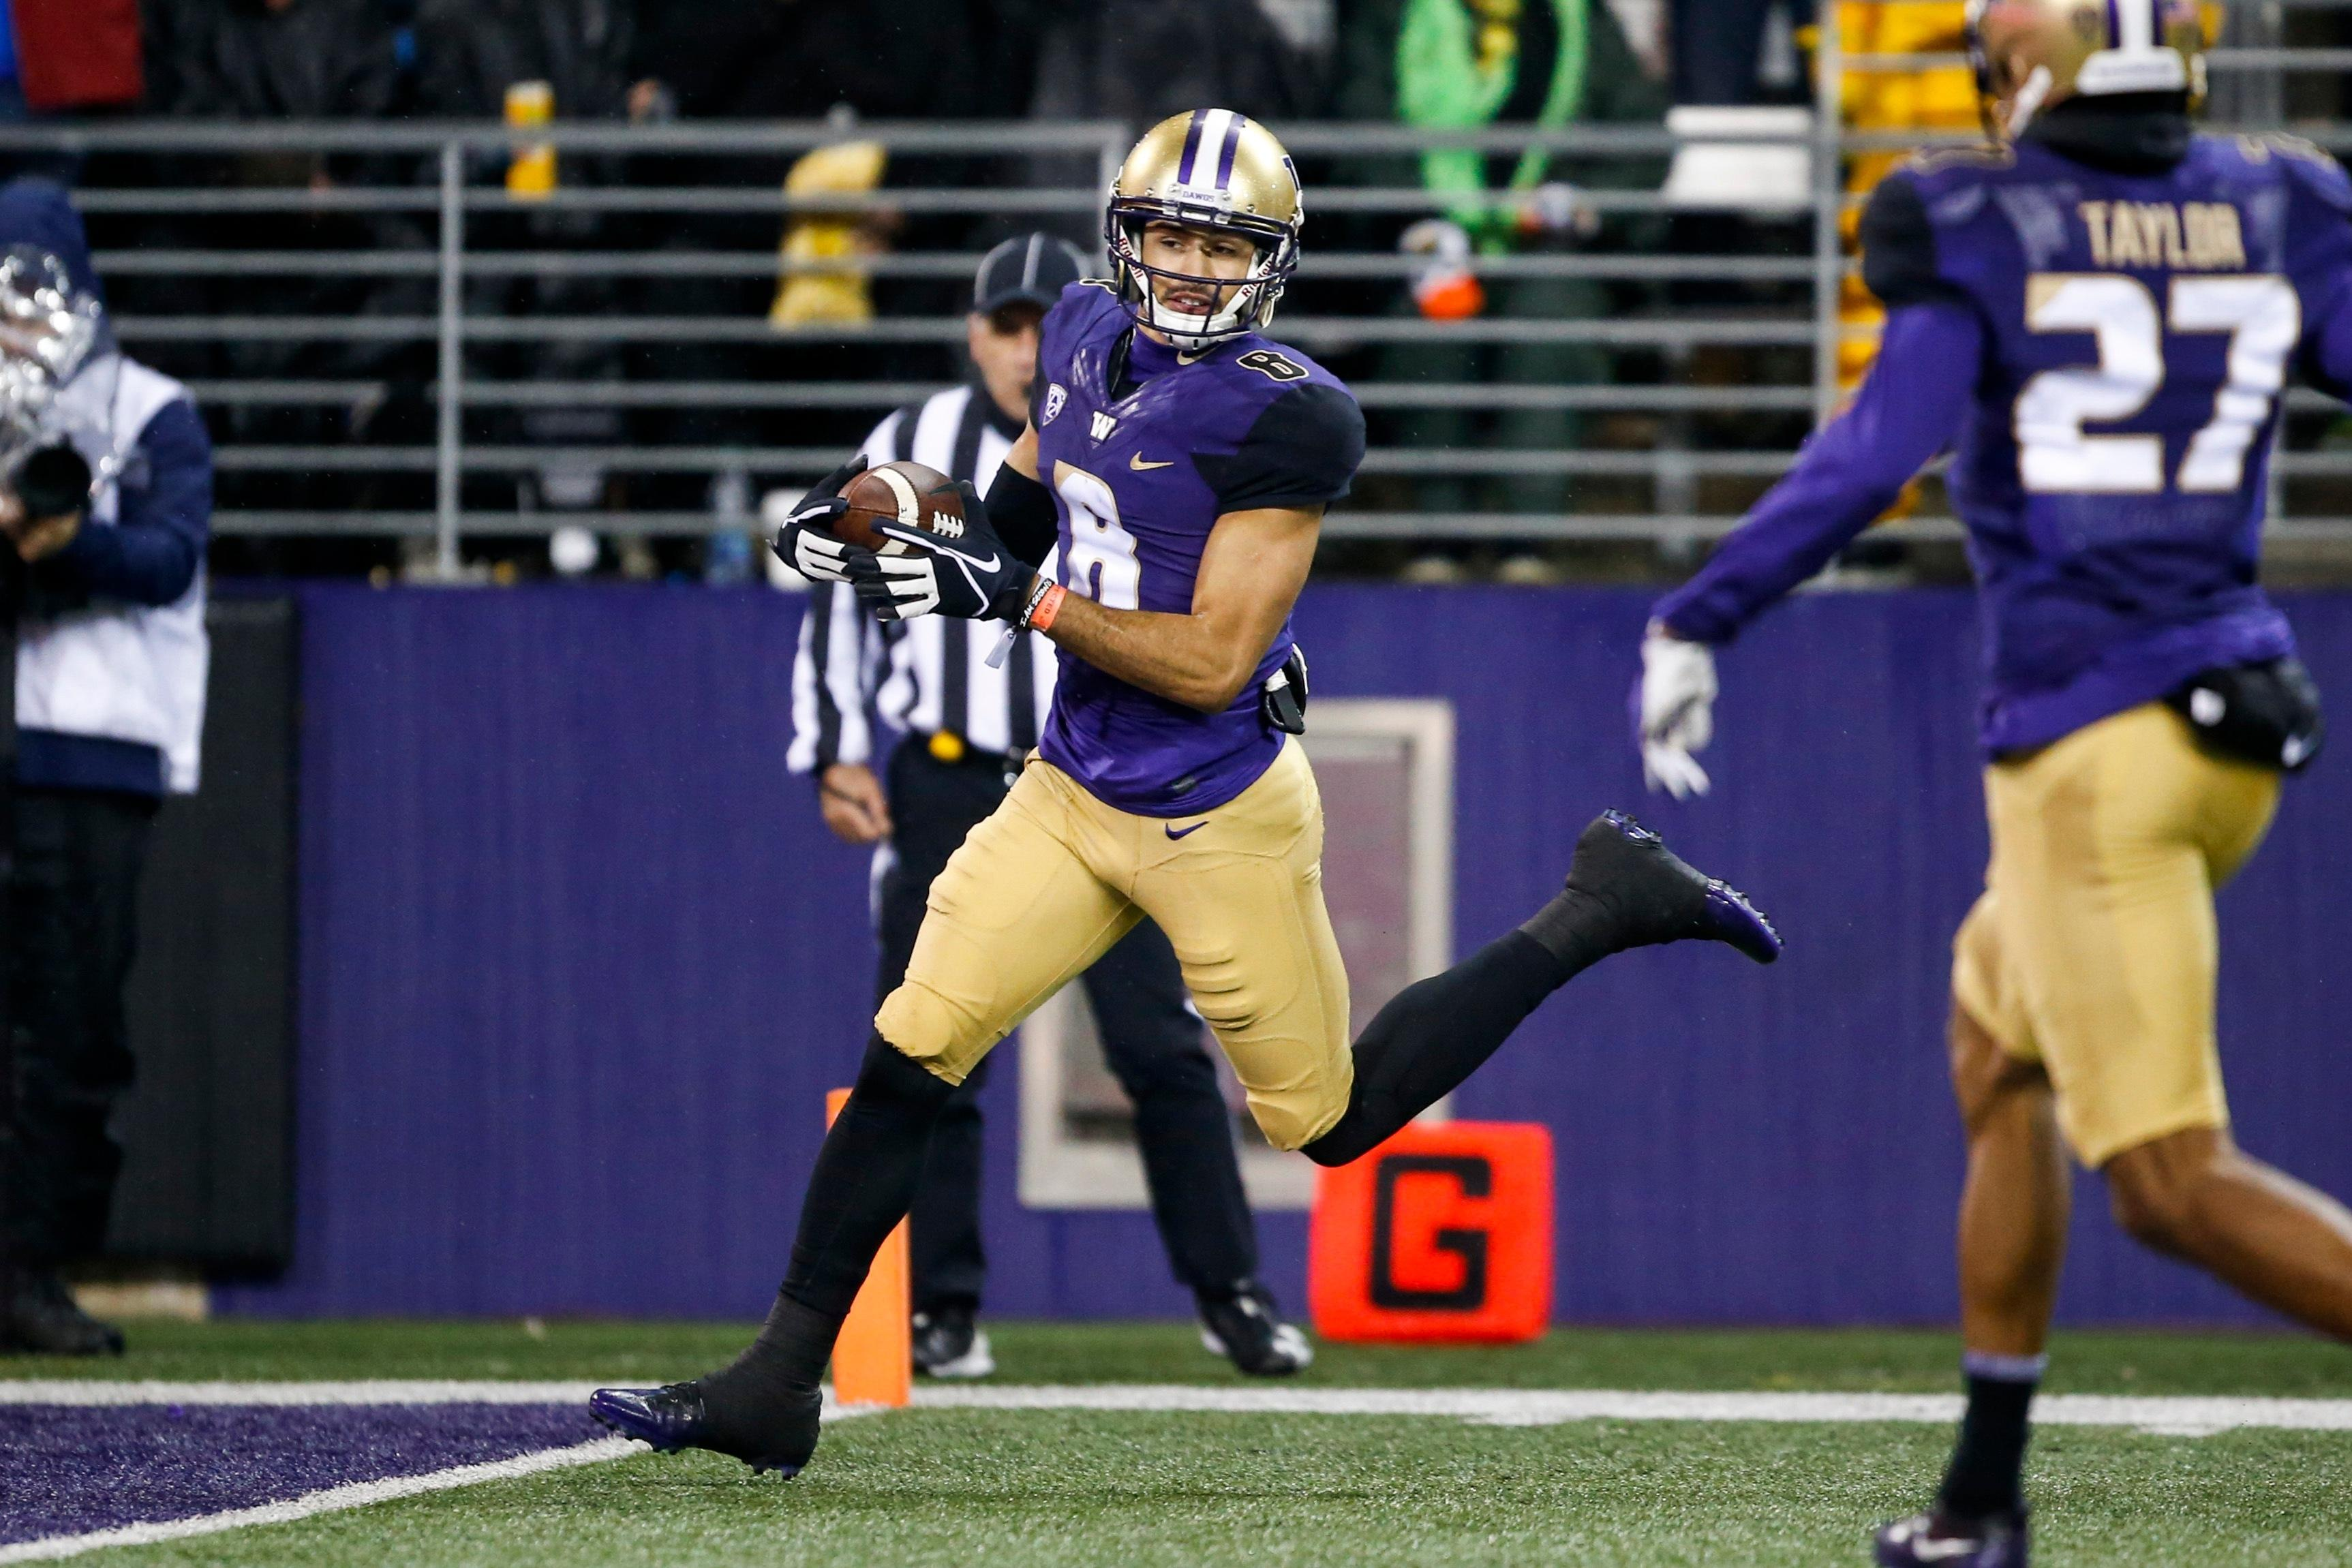 Watch Uw S Pettis Makes History With Ninth Punt Return Td